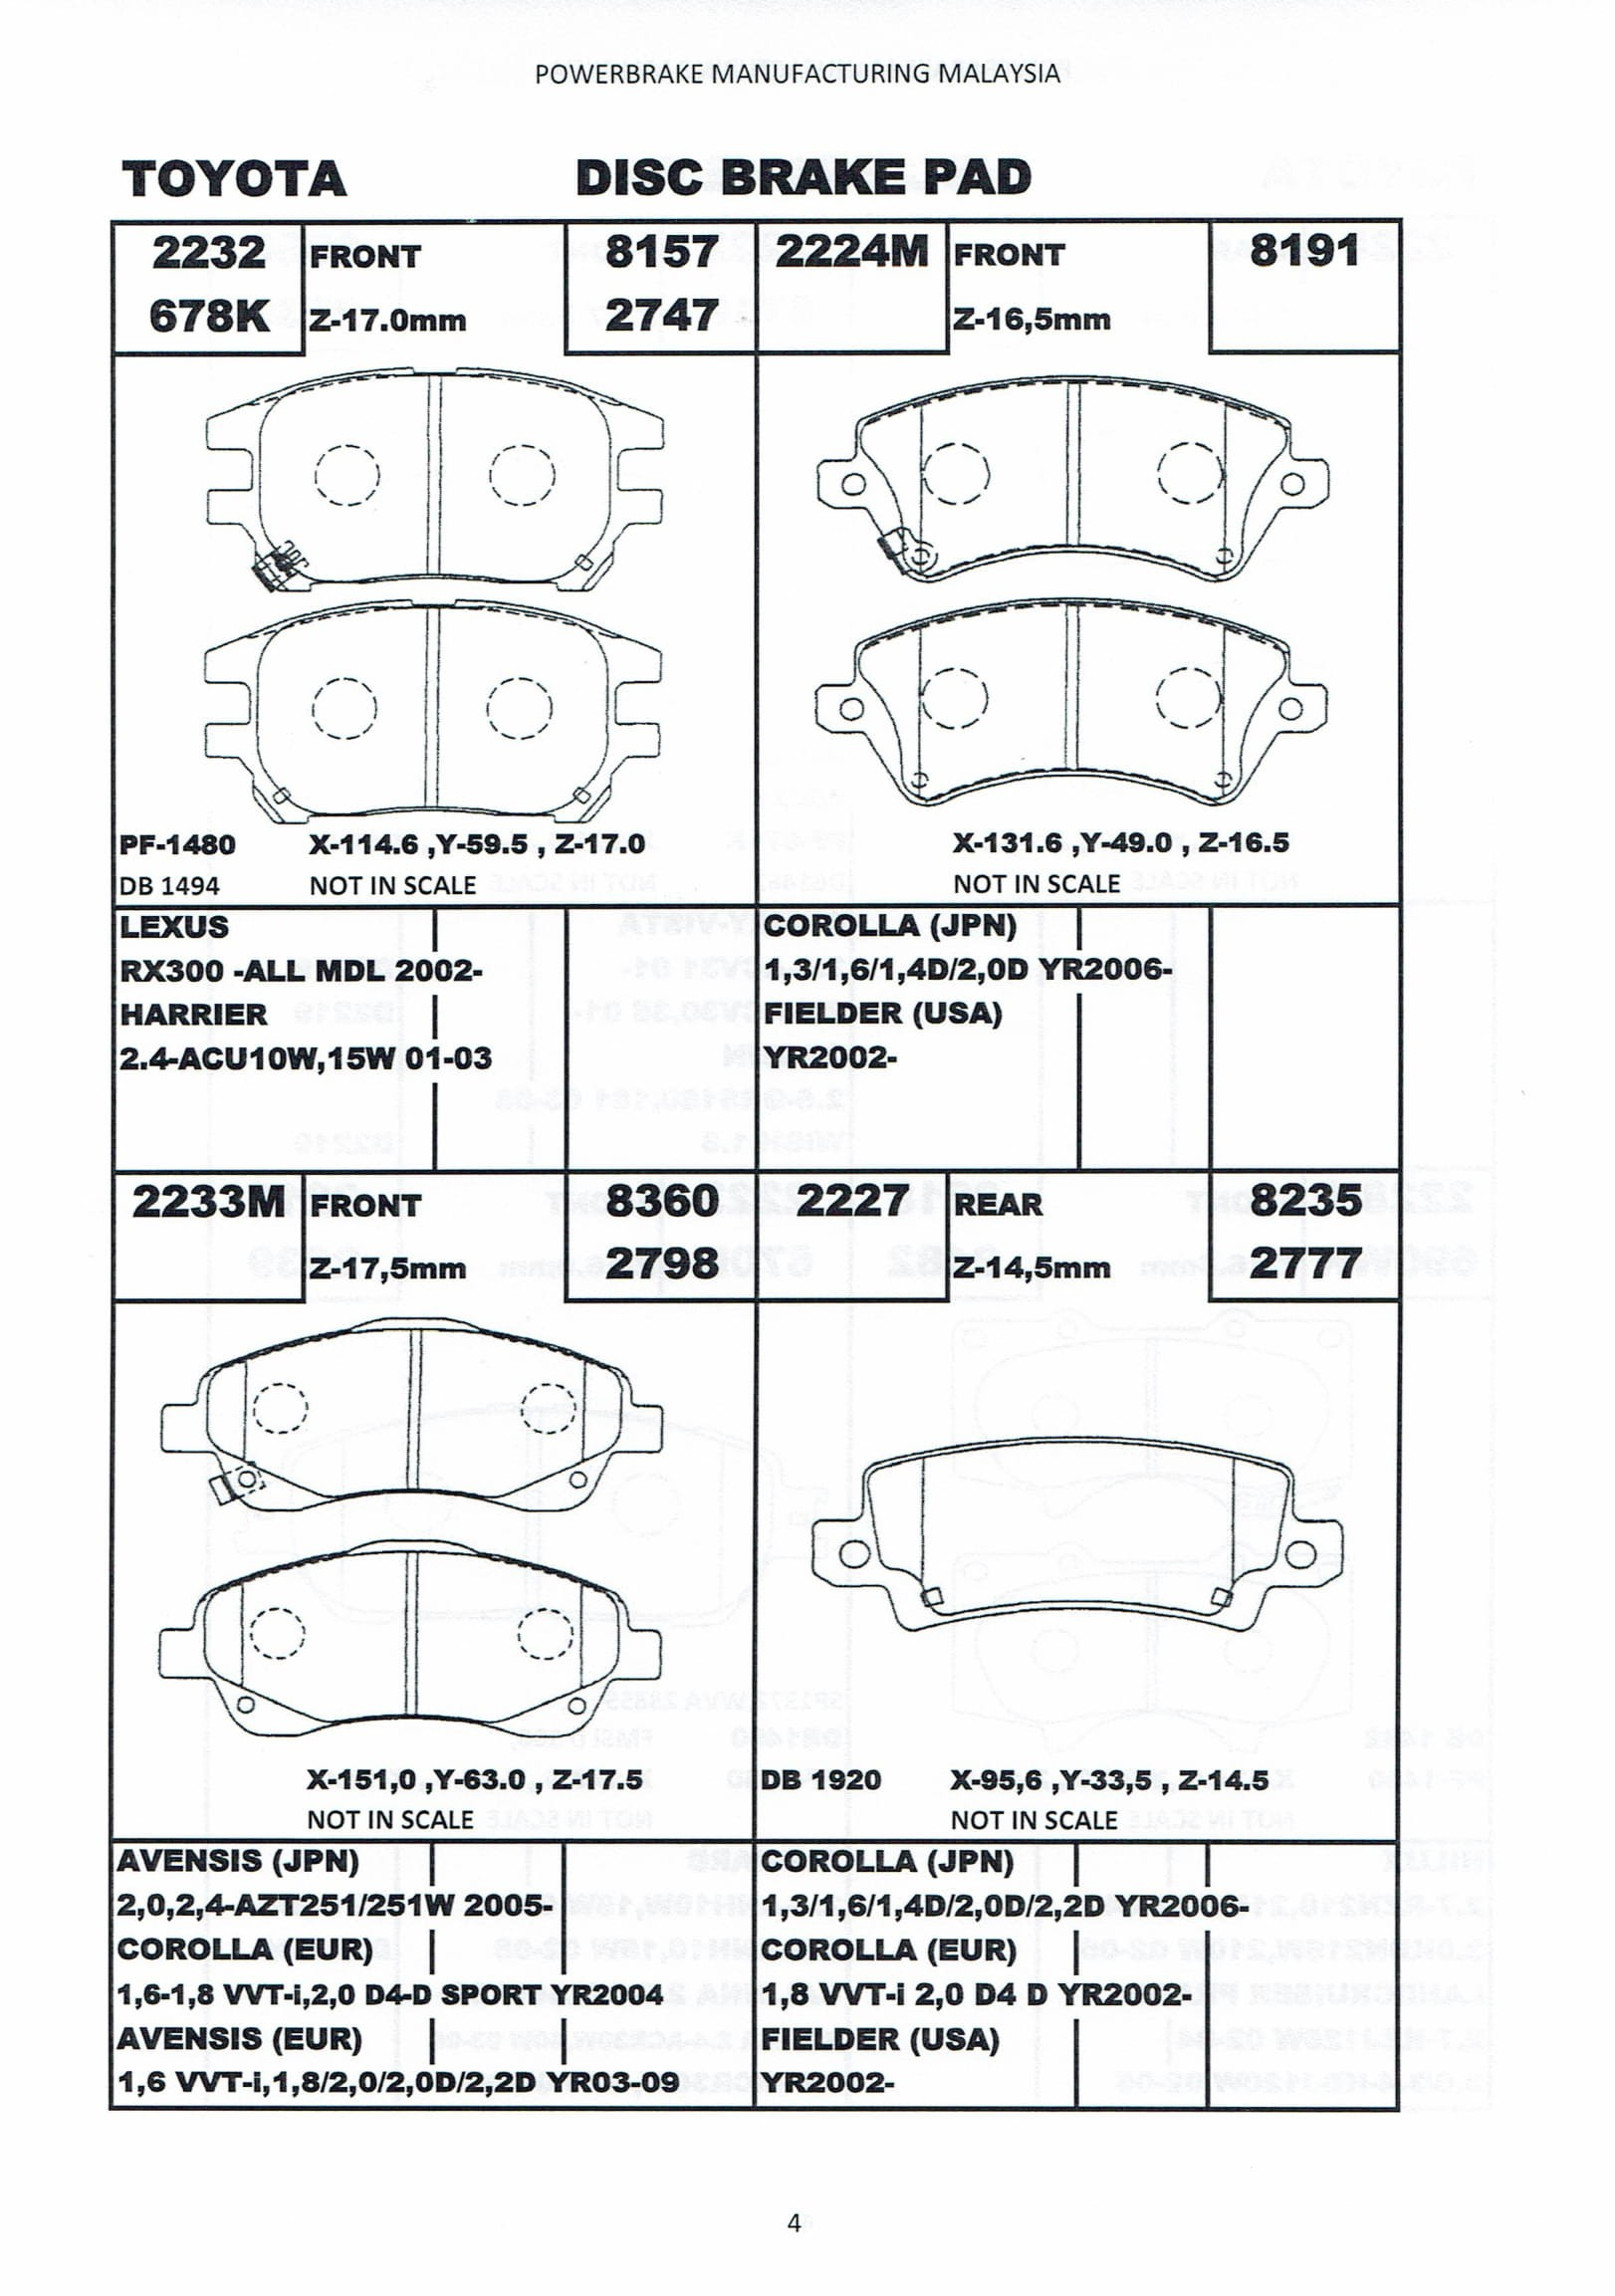 Brake Pads Diagram Power Brake Manufacturing Of Brake Pads Diagram